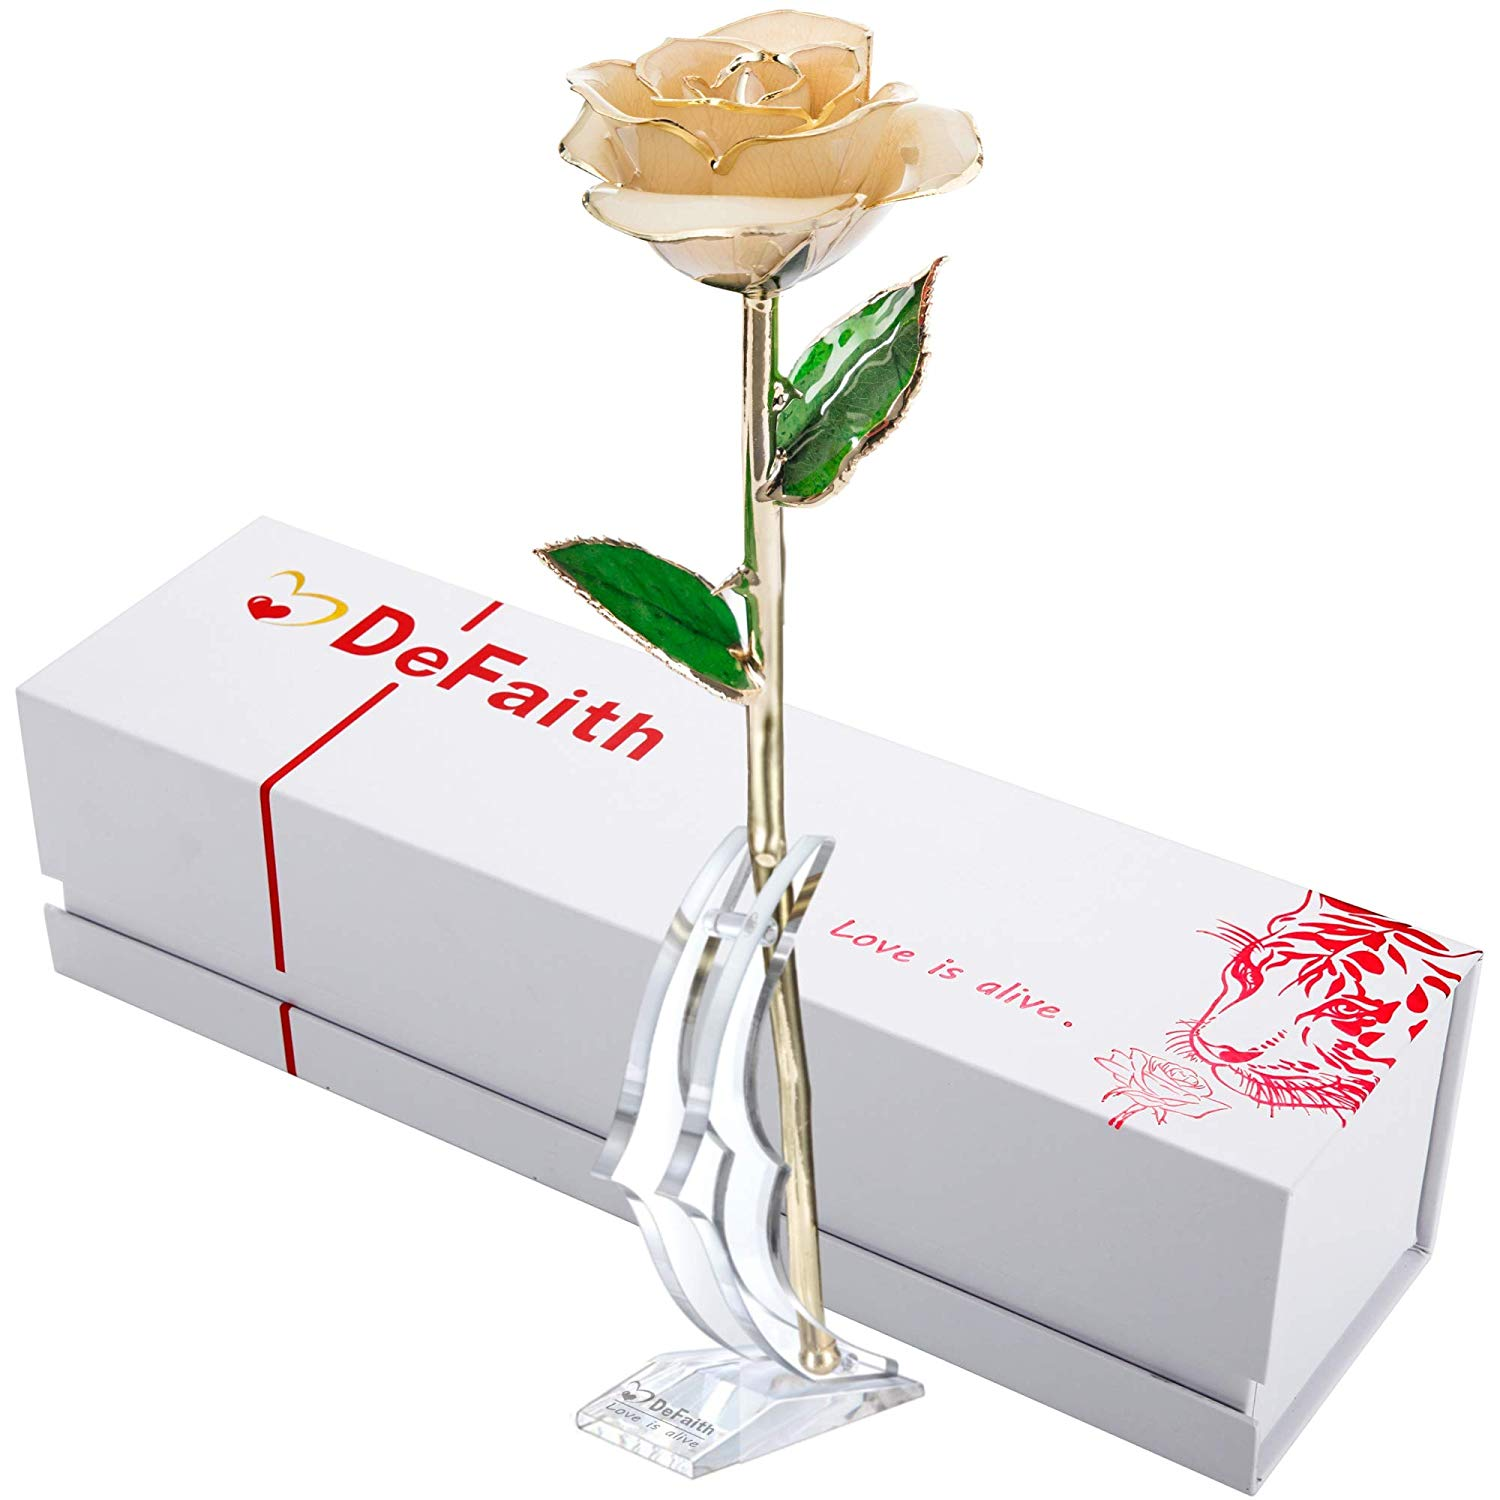 DEFAITH Real Rose 24K Gold Dipped, Forever Gifts for Her Valentine's Day Anniversary Wedding and Proposal - Ivory with Stand